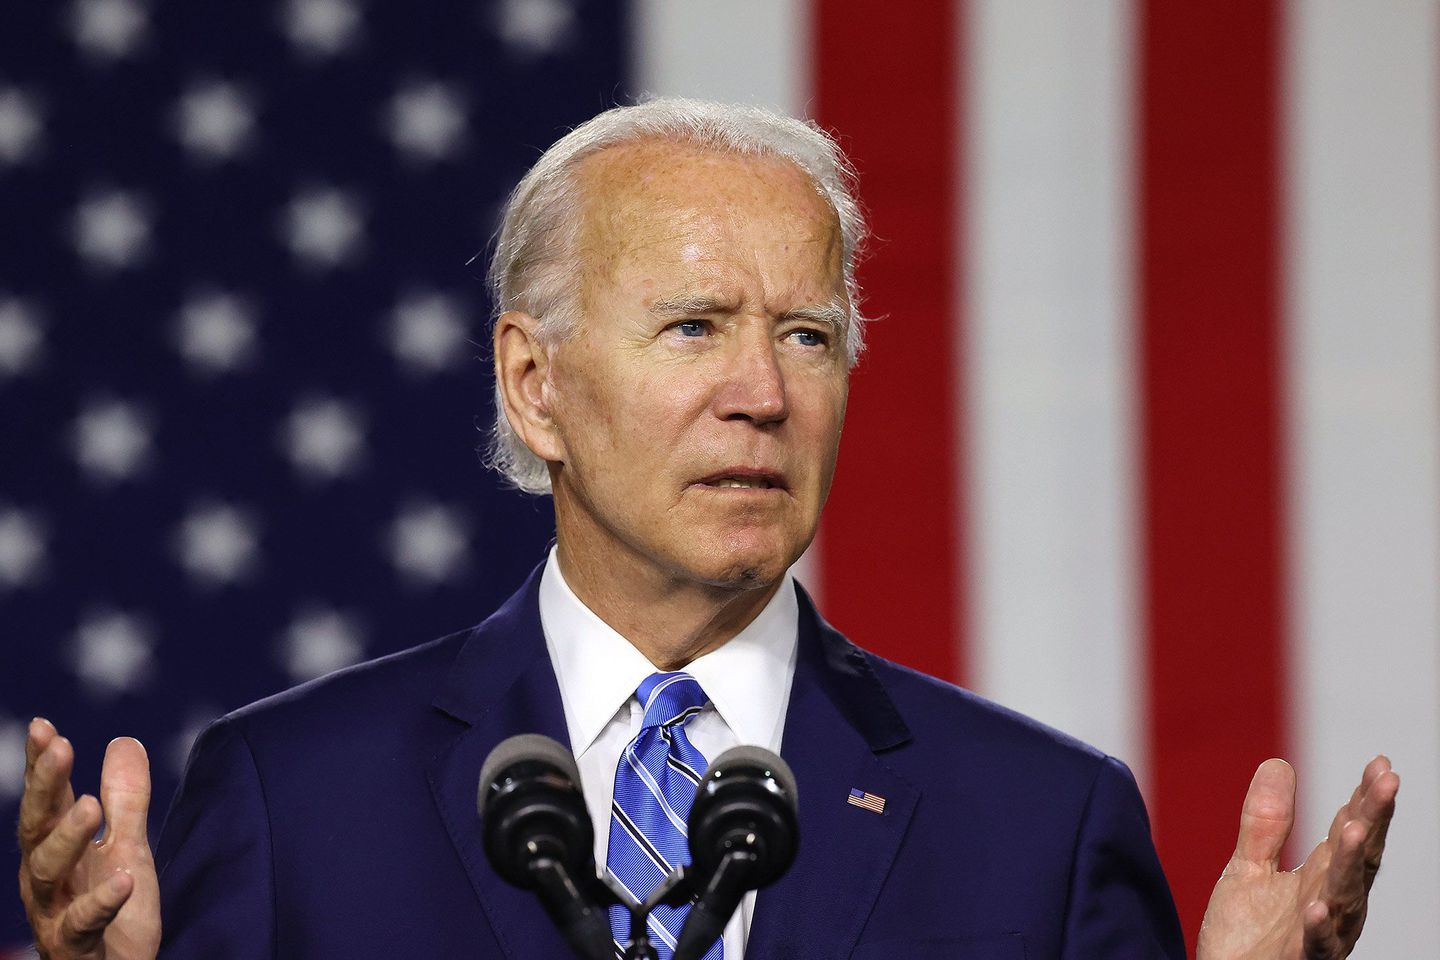 The left has avoided discussing Joe Biden's slave owning ancestors